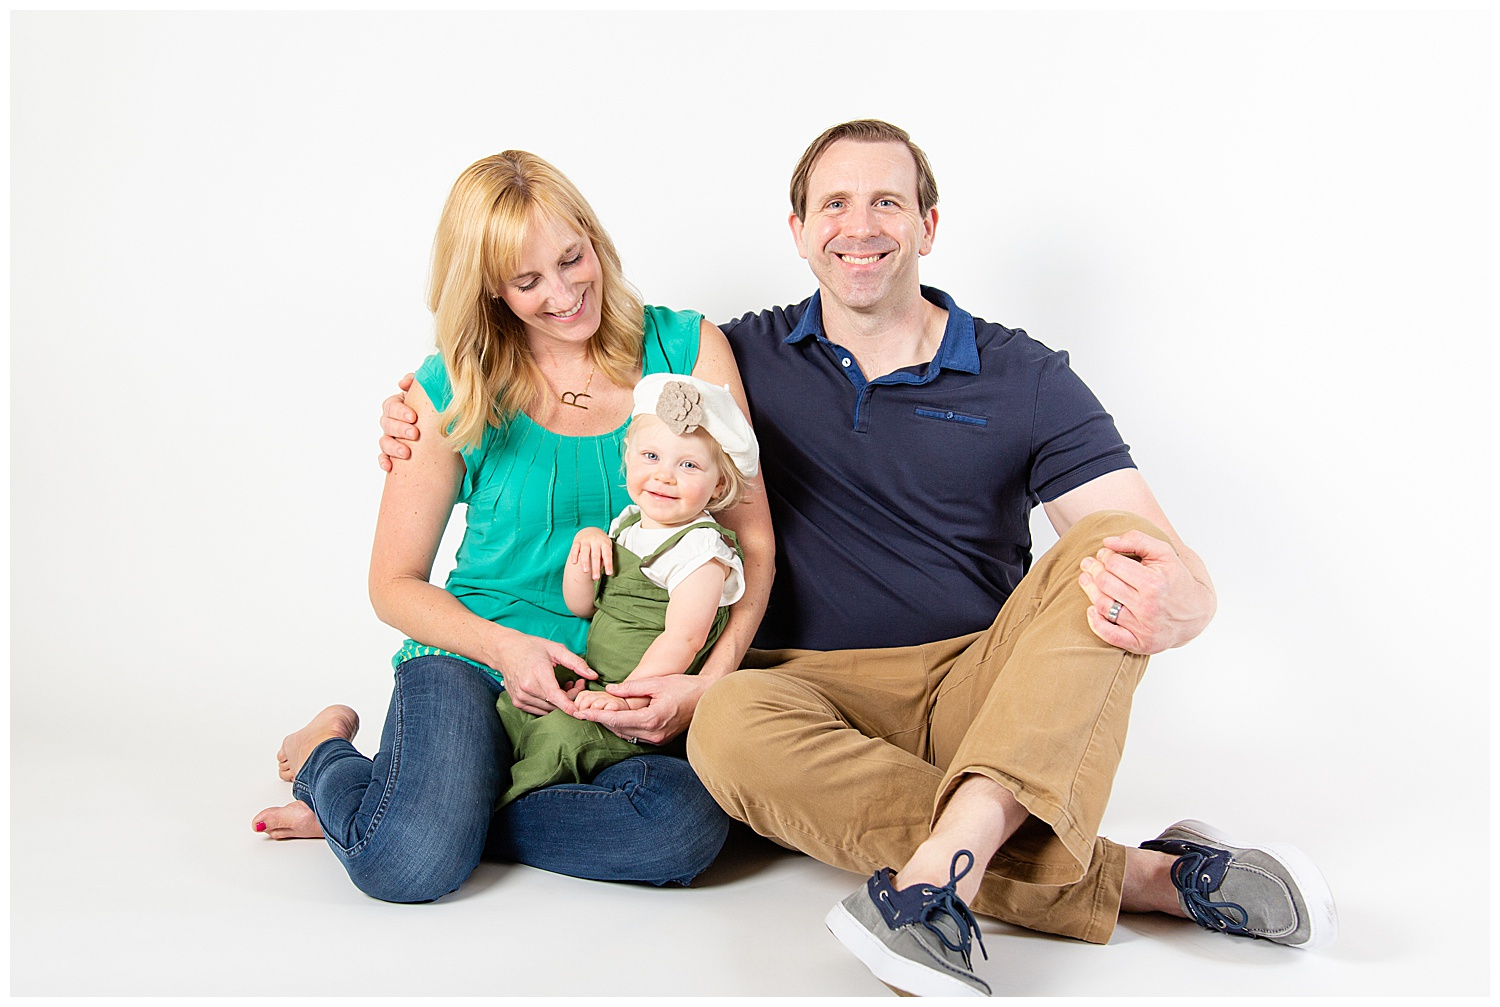 emily-belson-photography-family-session-13.jpg